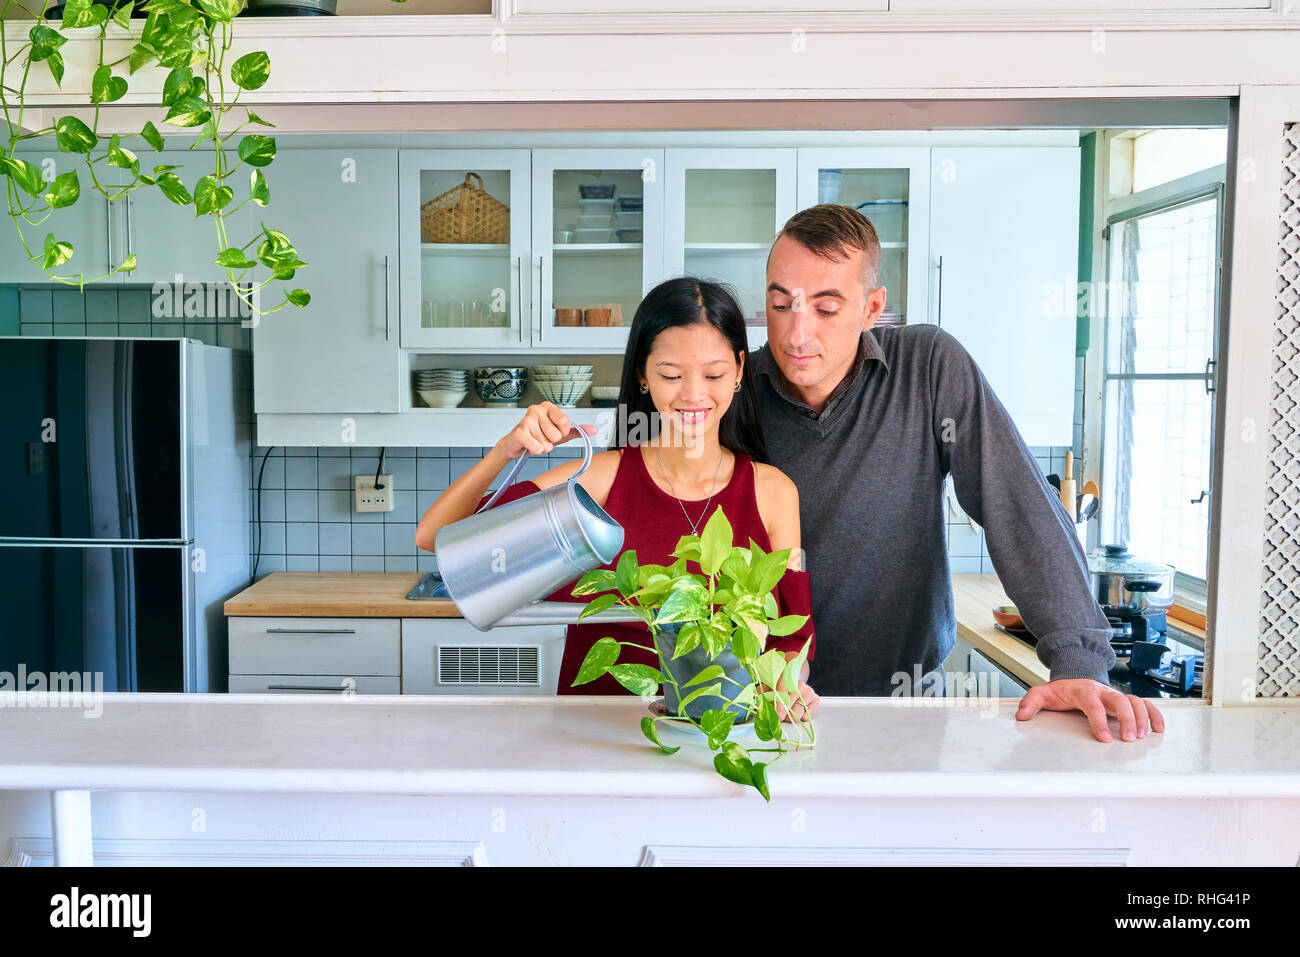 Lovely couple posing - watering plants and taking care the plants - Stock Image